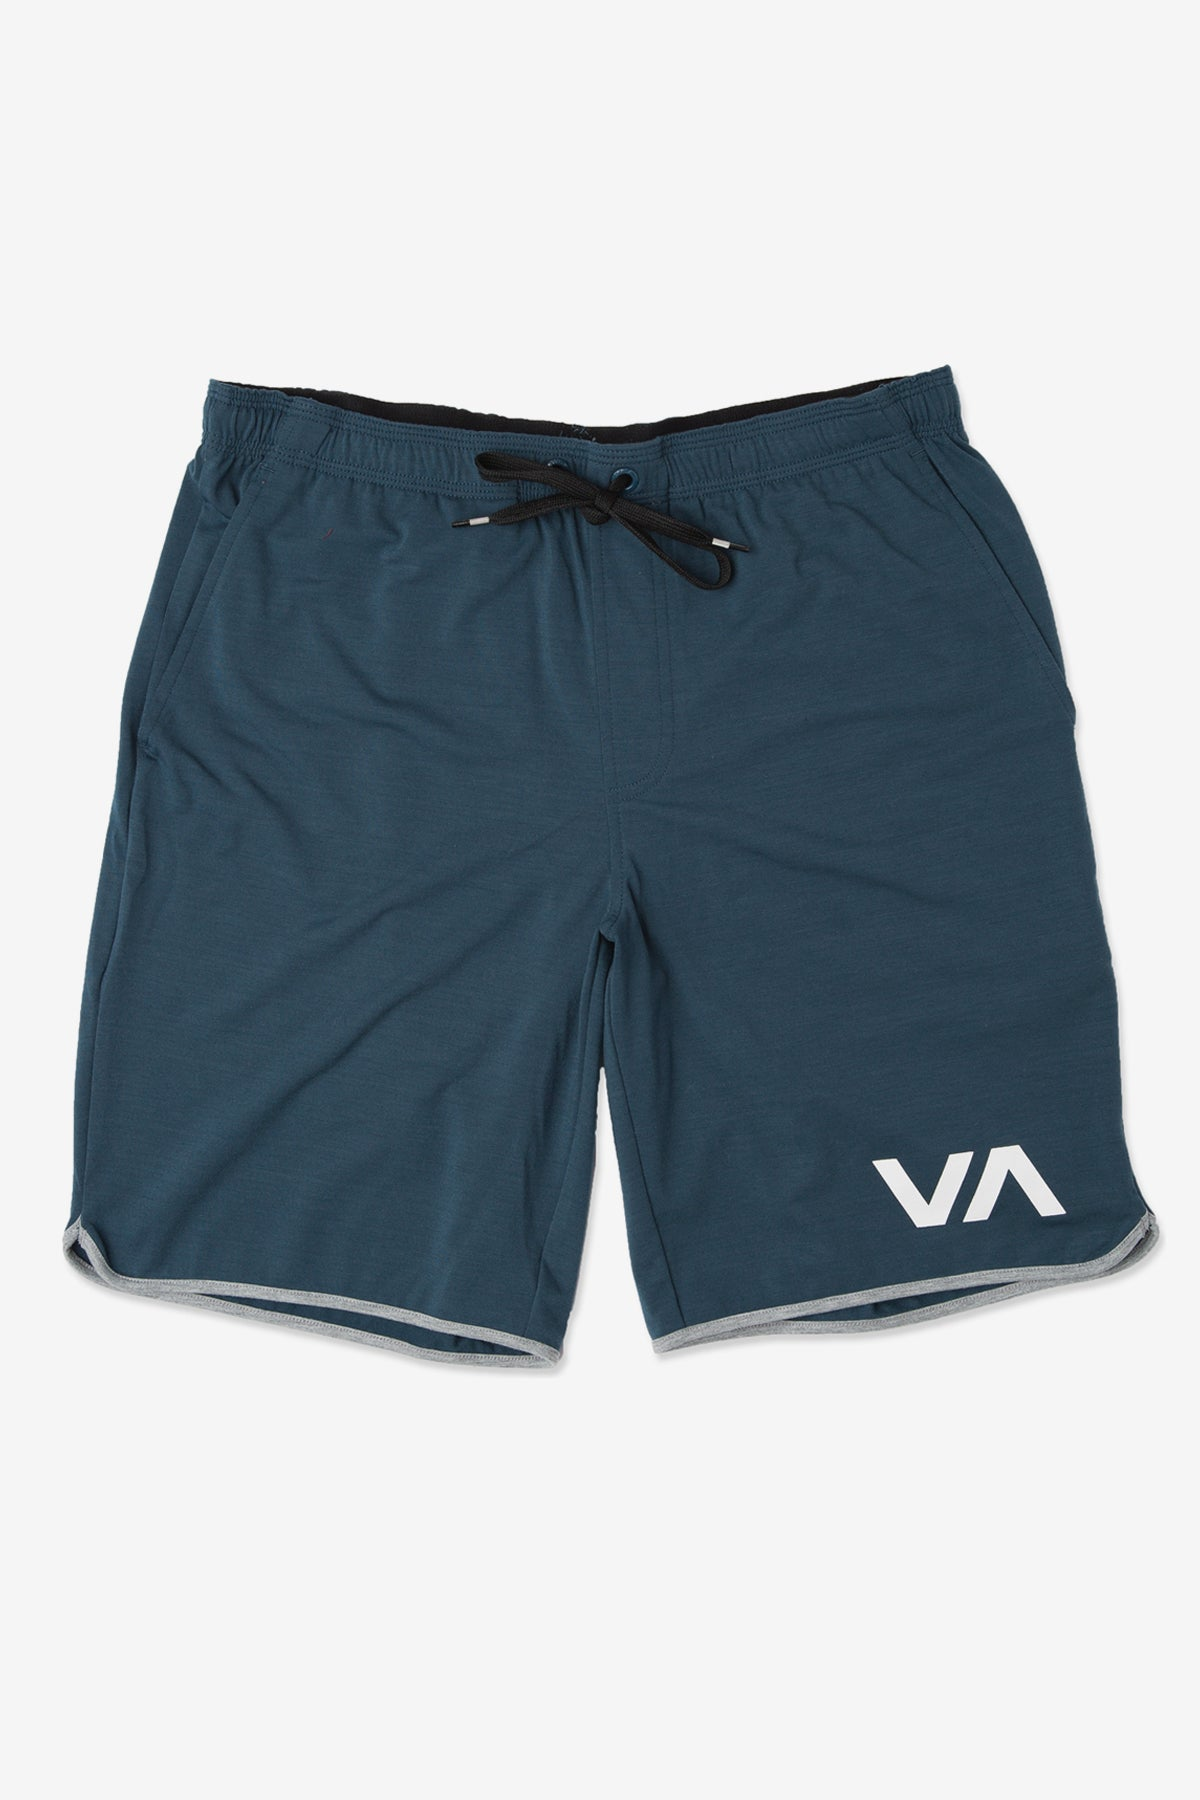 RVCA VA Sports Sports - Surplus Blue